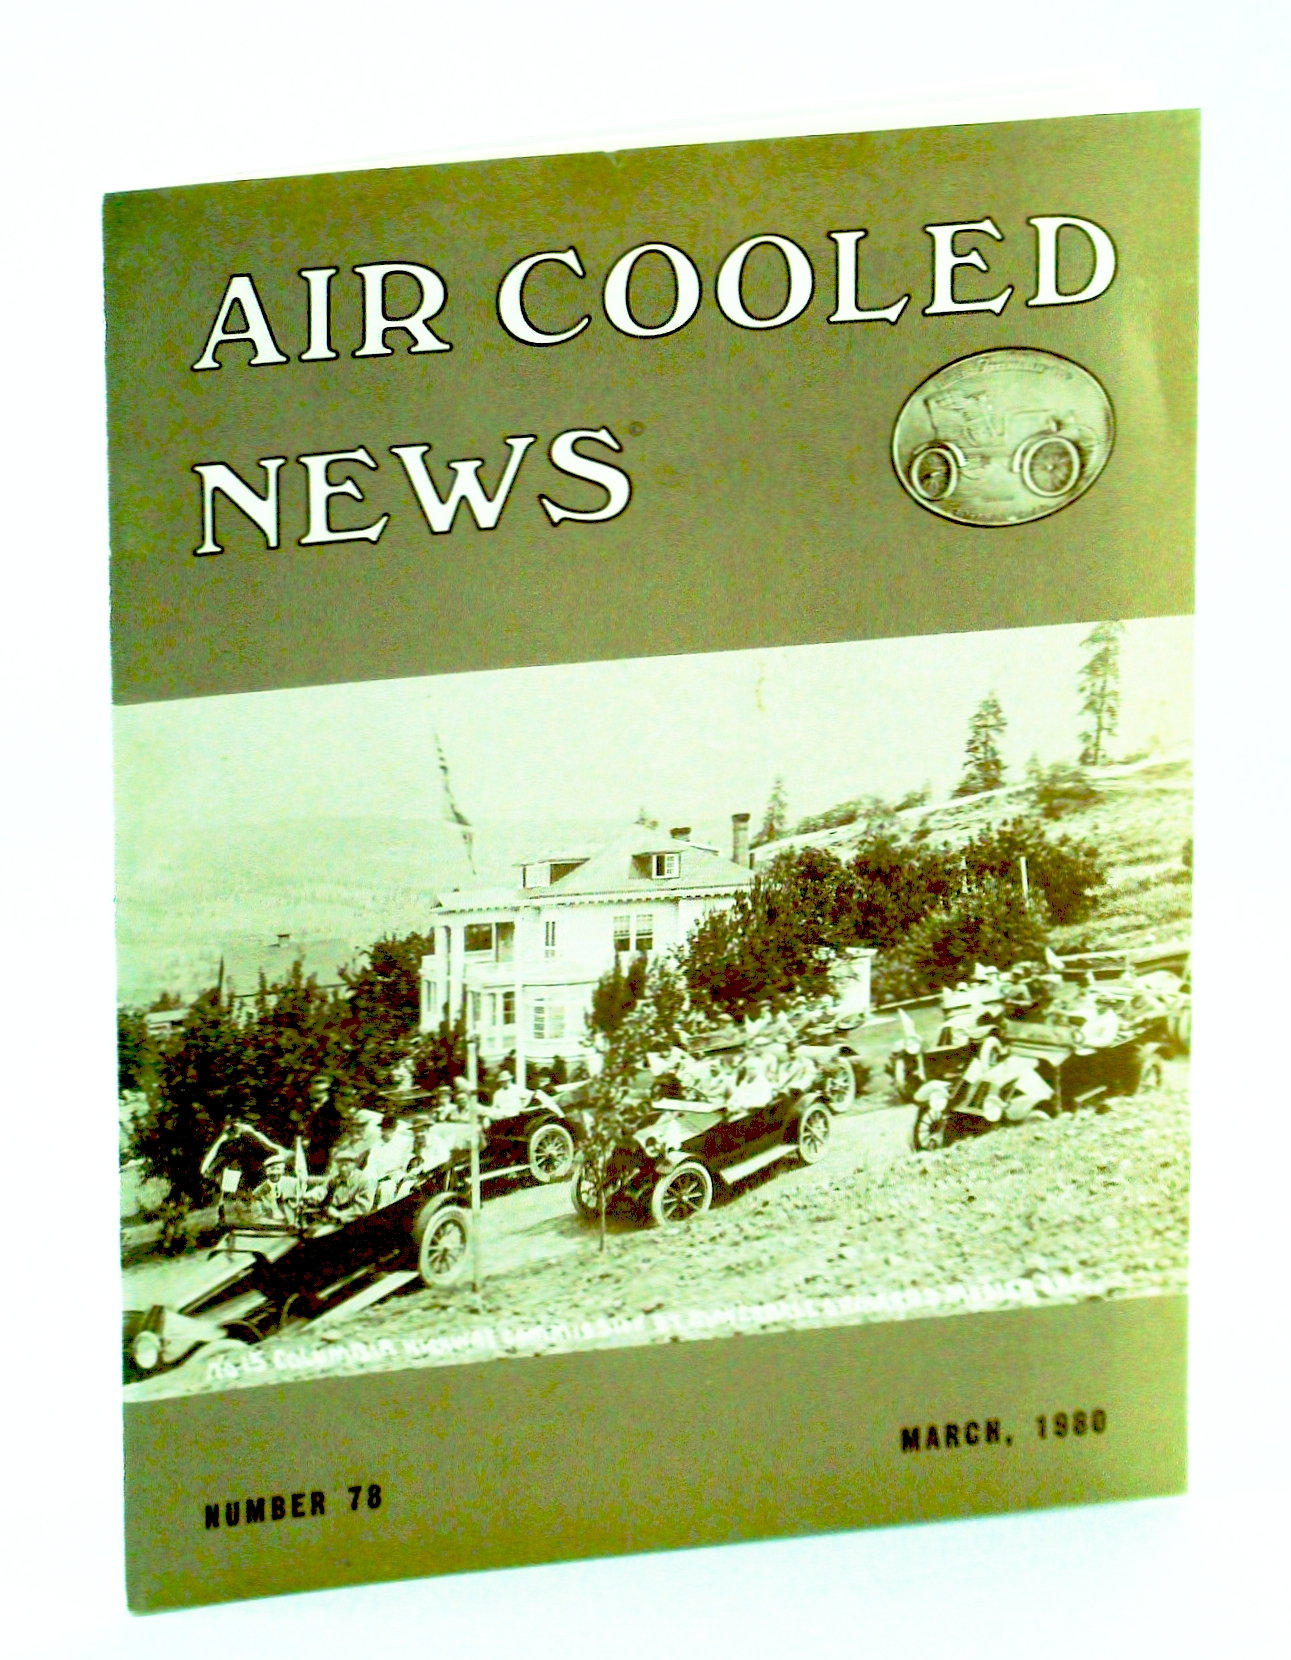 Image for Air Cooled News, Number 78, March [Mar.] 1980, Vol. XXVI, No. 3 - Harry T. Gardner / The 8 HP Rover Car 1922